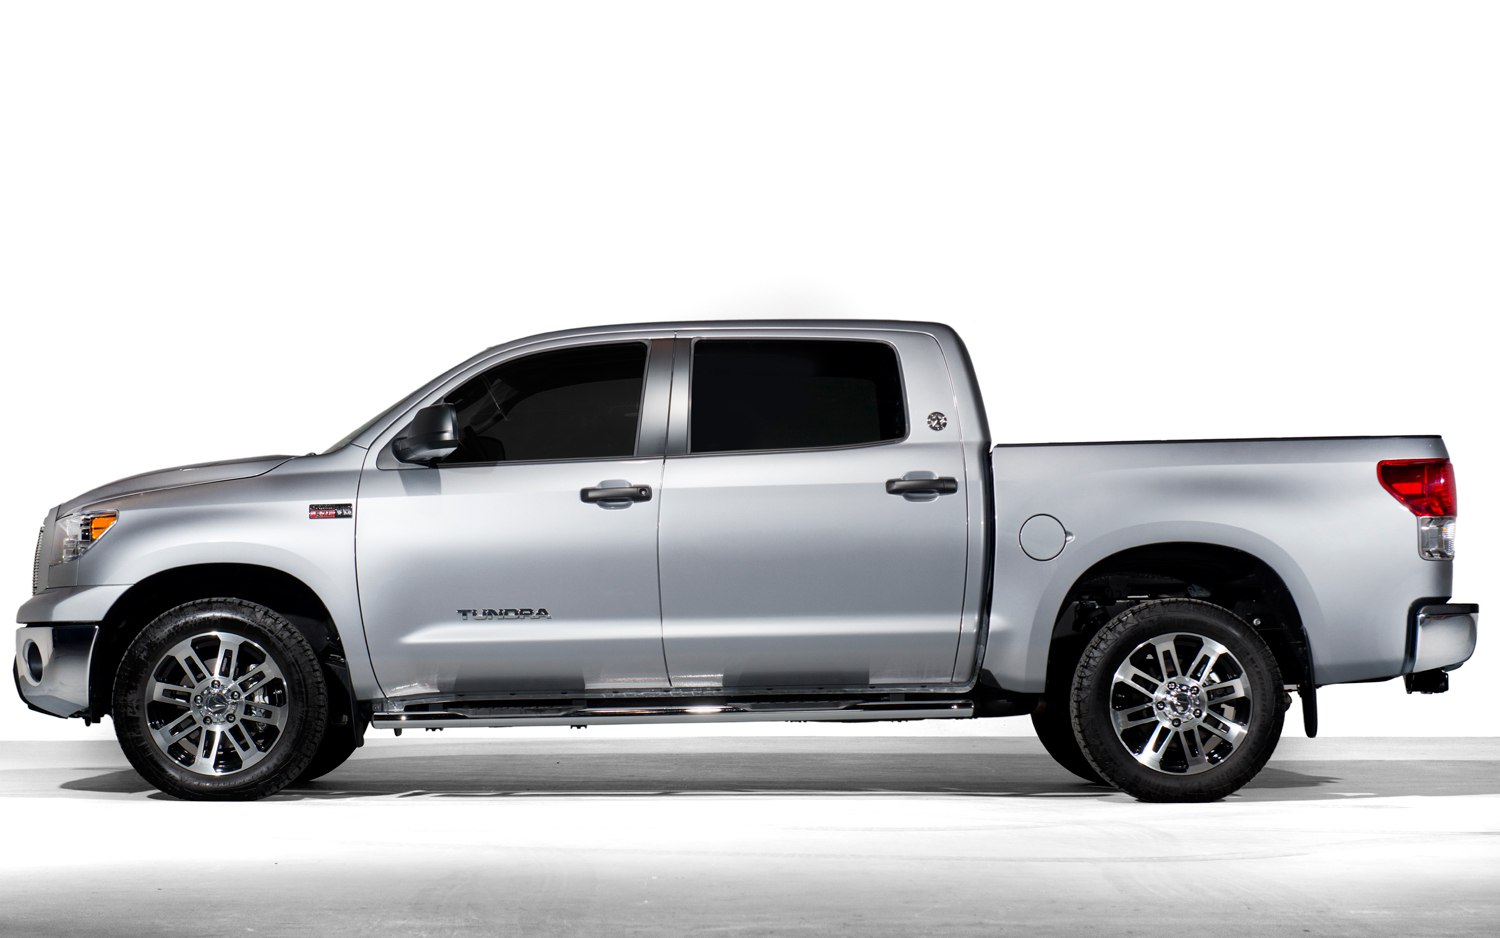 Oil Reset 187 Blog Archive 187 2013 Toyota Tundra Maintenance